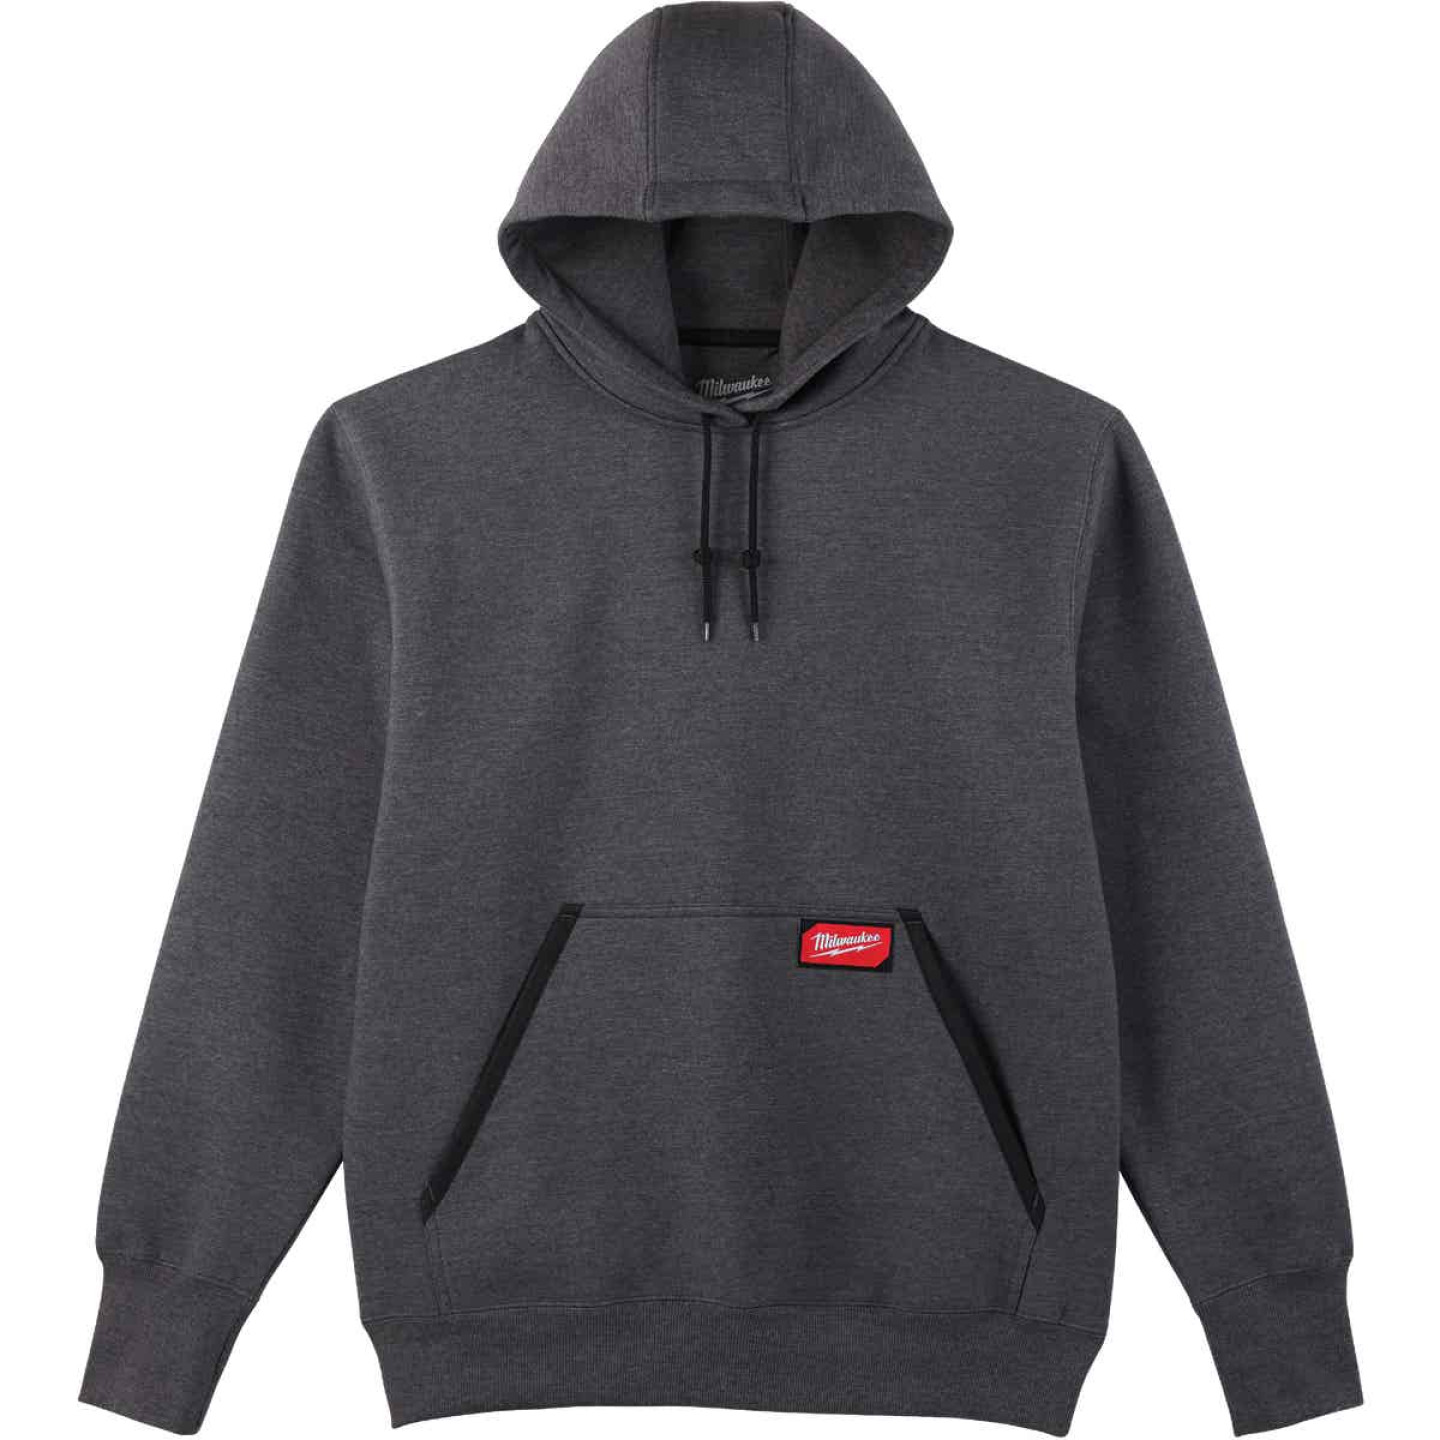 Milwaukee 2XL Gray Heavy-Duty Pullover Hooded Sweatshirt Image 1